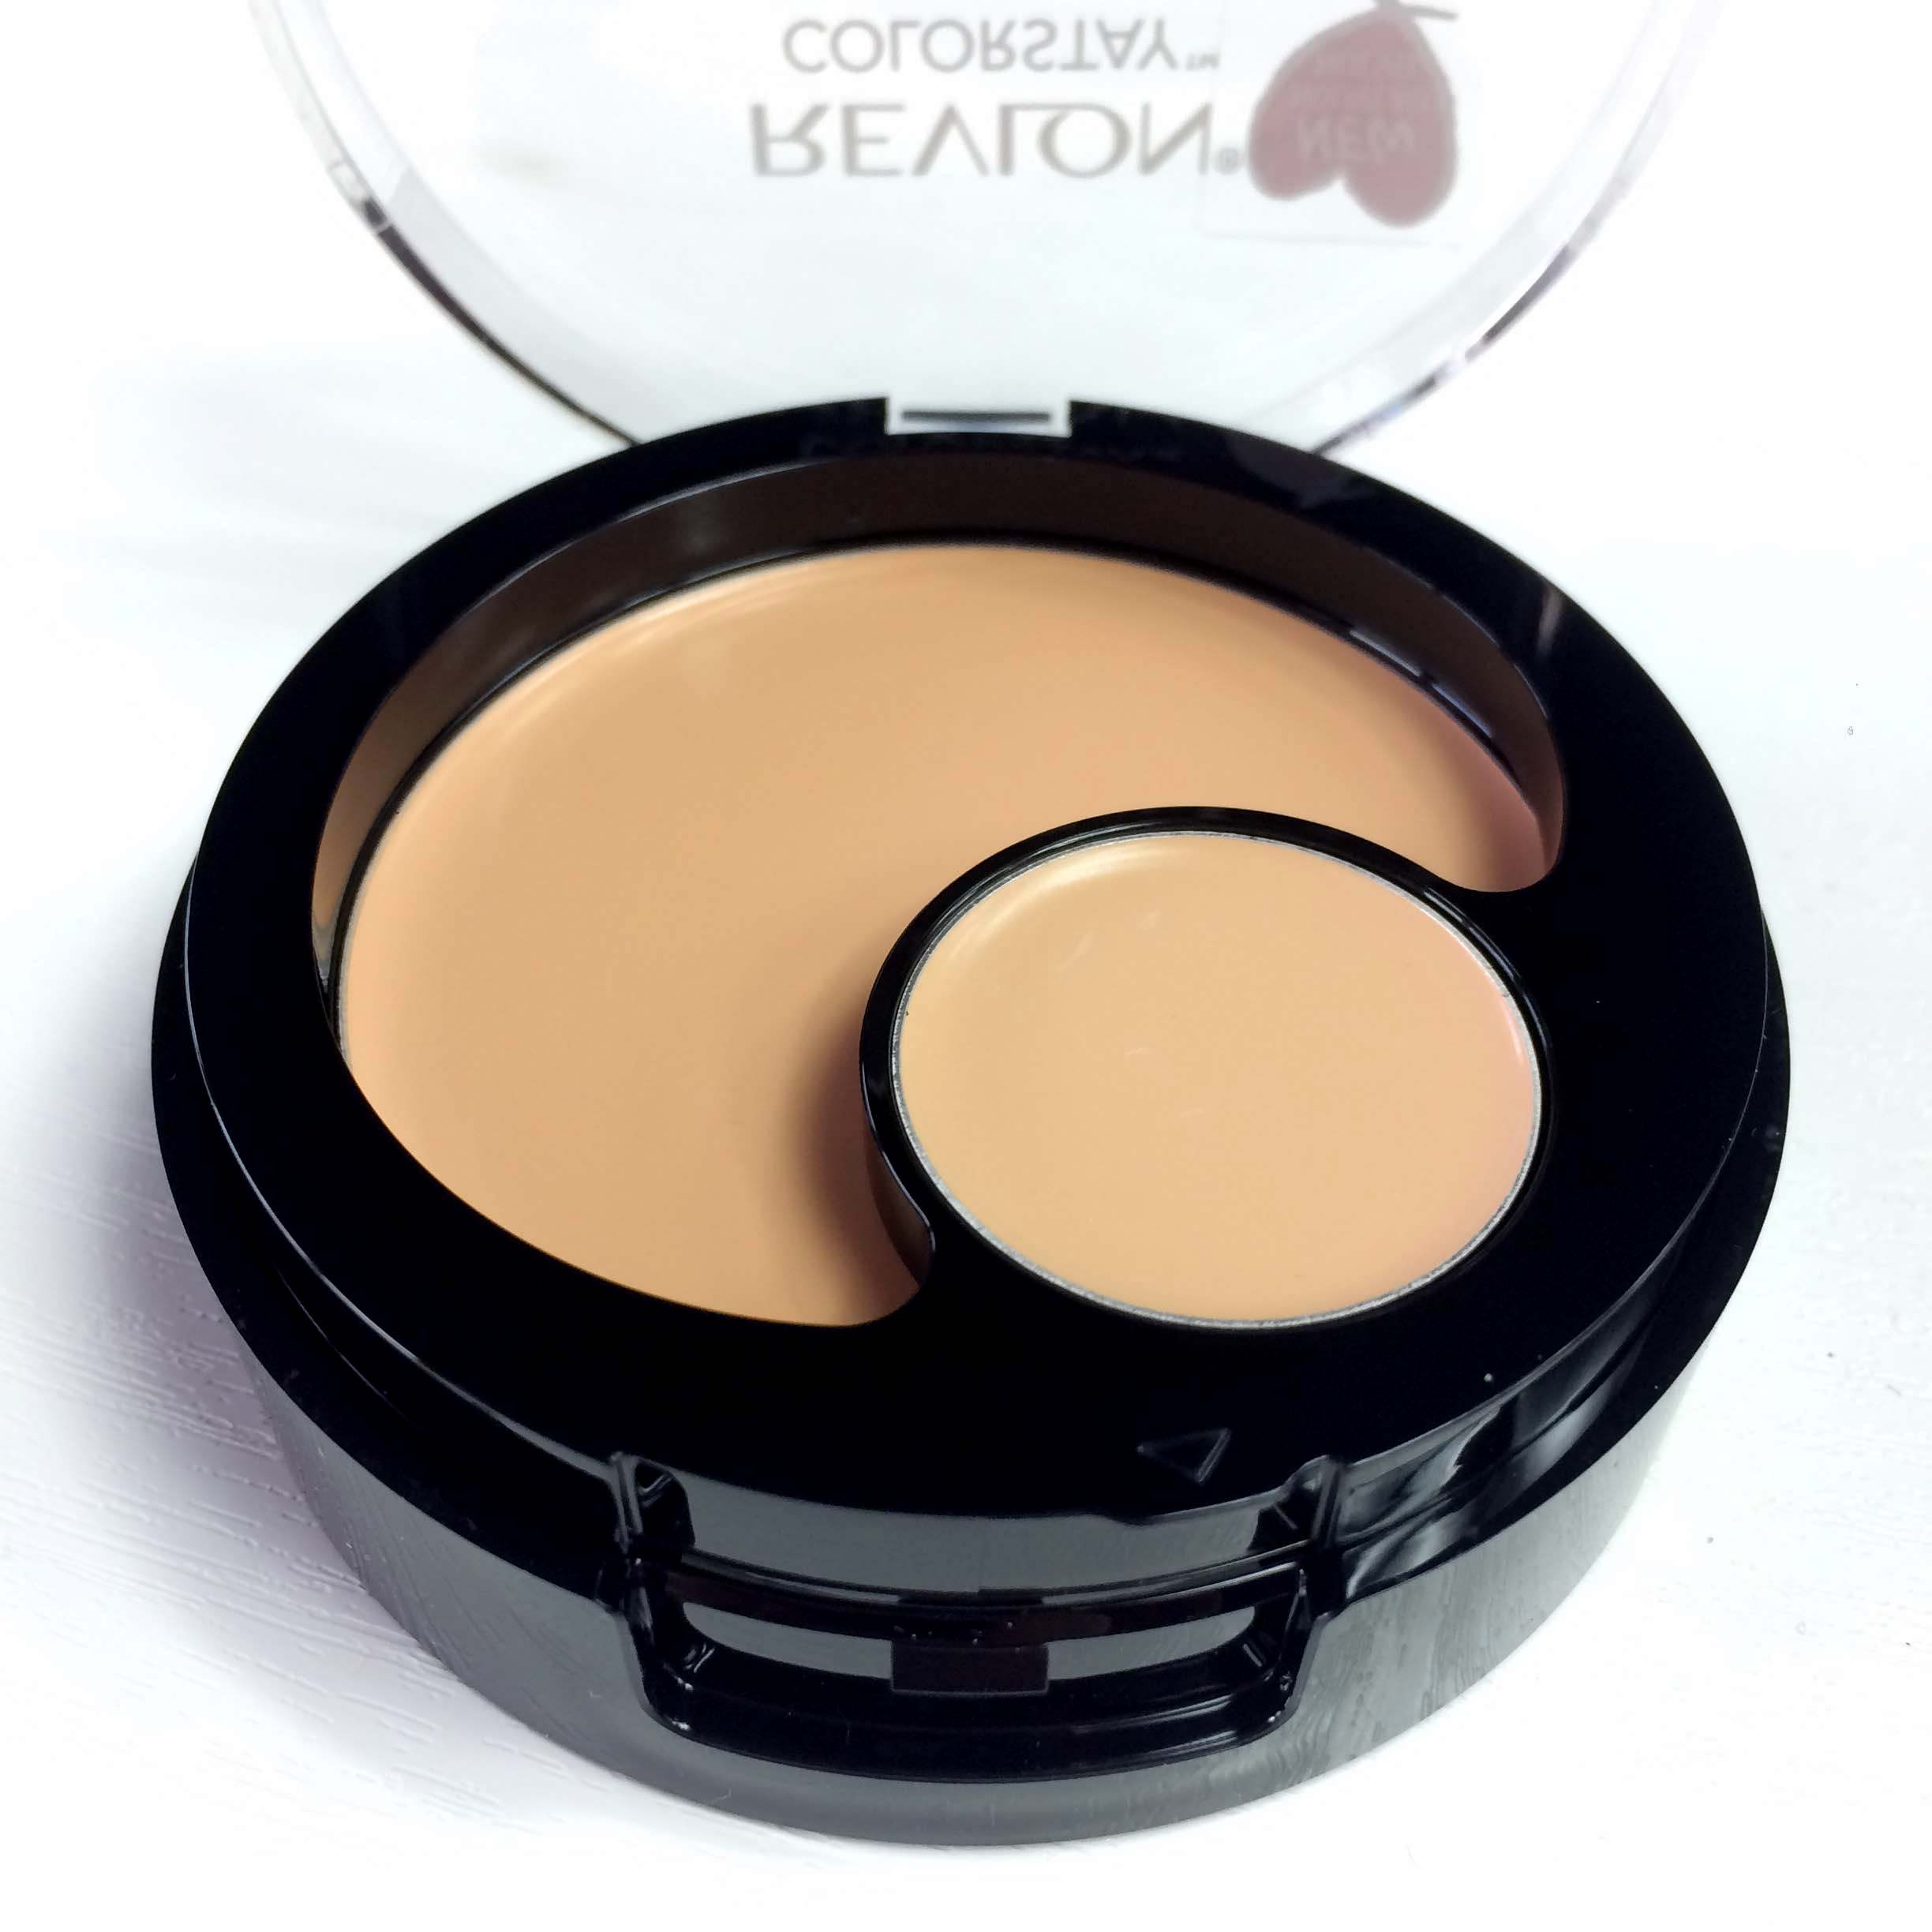 Find Your Foundation | Revlon ColorStay 2-in-1 Compact Makeup and Concealer Review